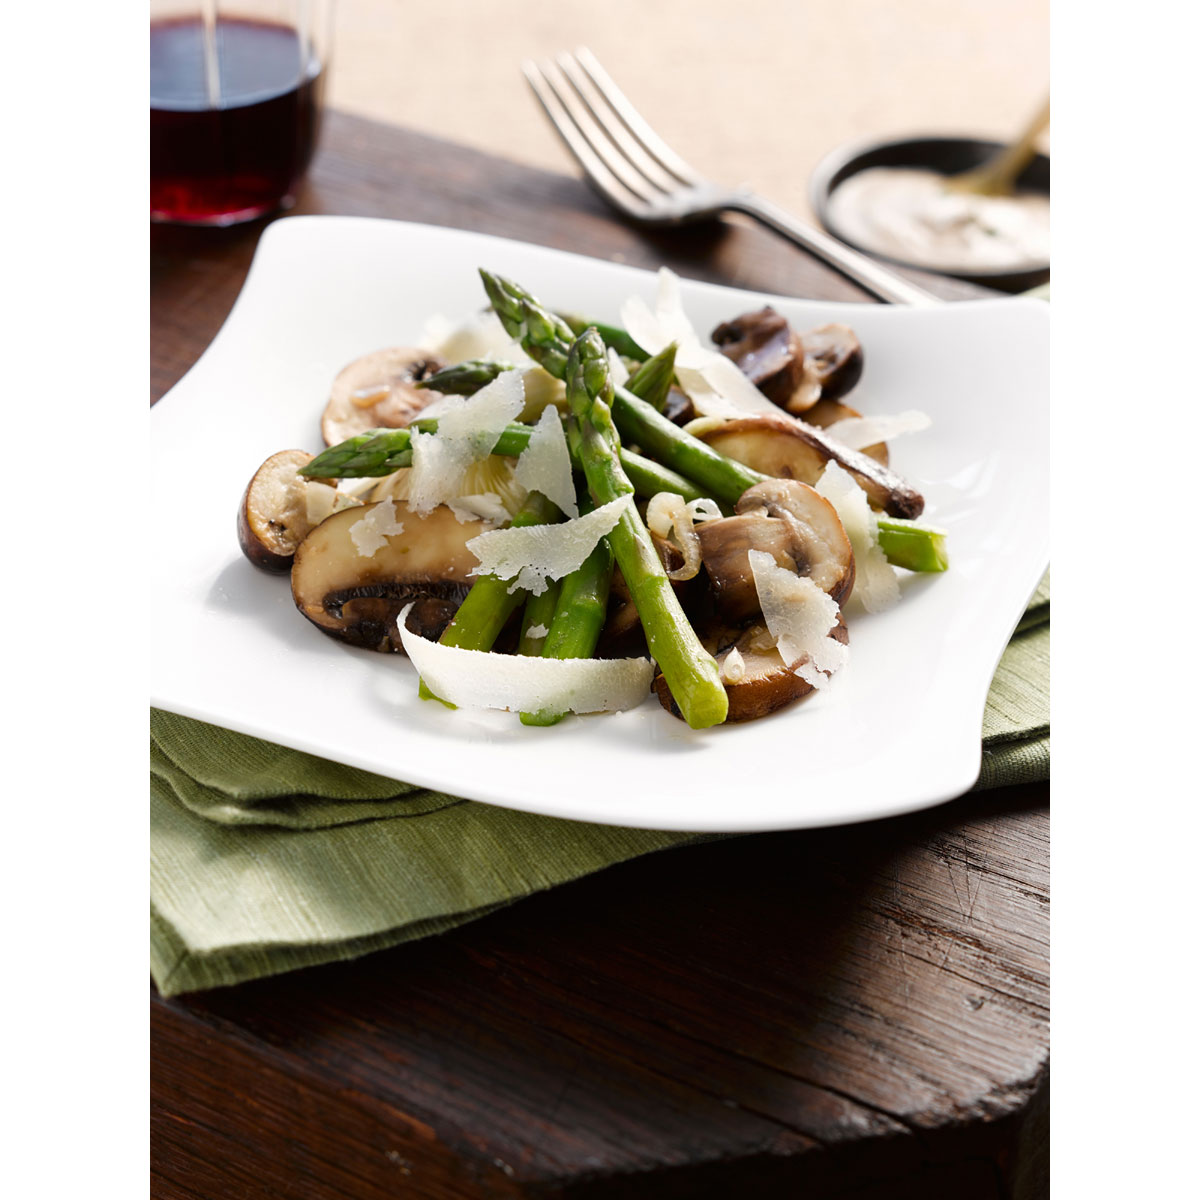 Asparagus and mushroom salad with creamy Grana Padano vinaigrette